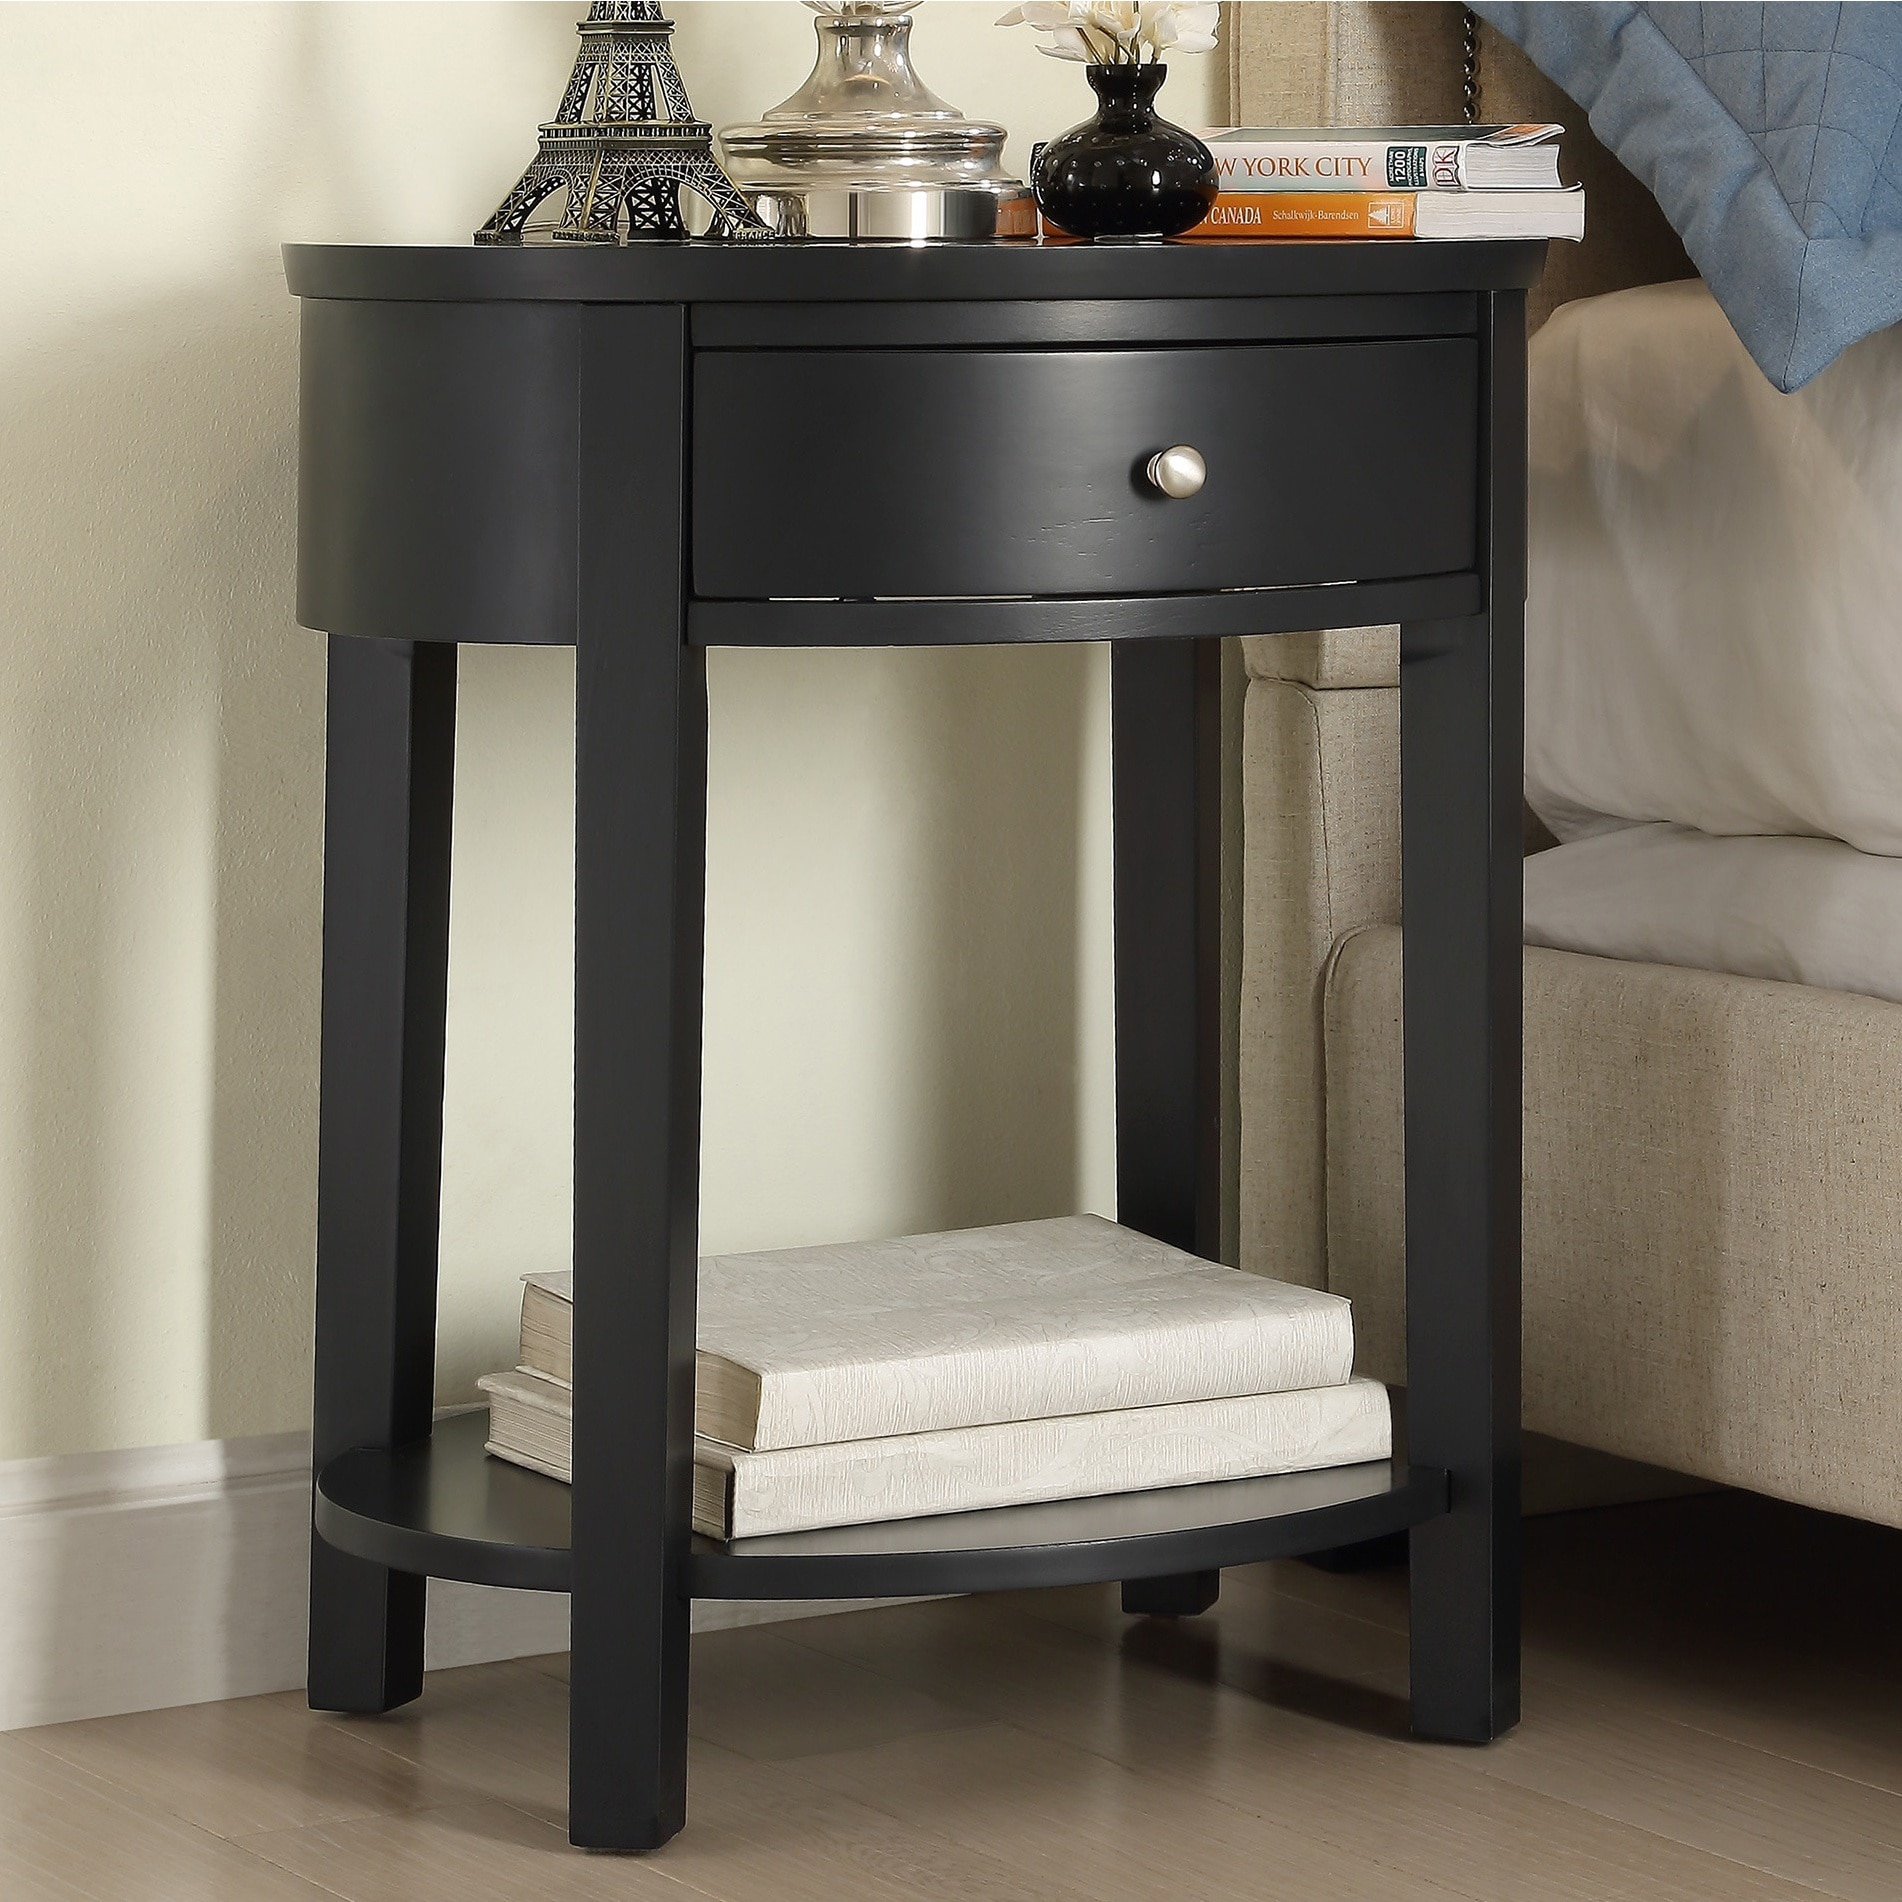 Fillmore-1-drawer-Oval-Wood-Shelf-Accent-End-Table-by-1-drawer thumbnail 7